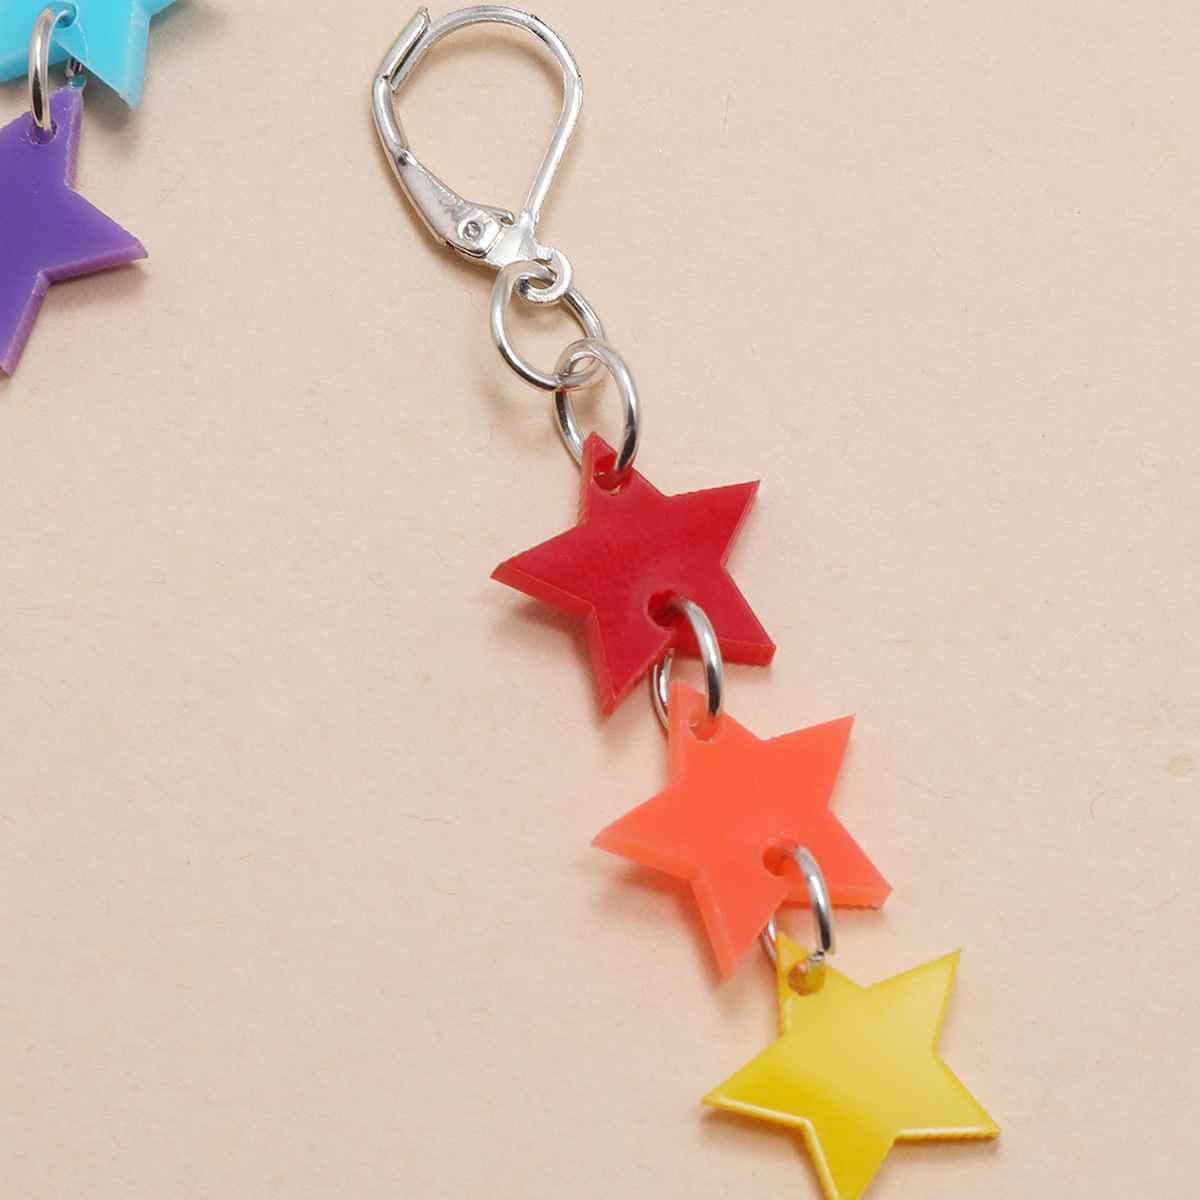 new style keychain hanging ring red orange yellow green blue purple acrylic tassel star five-pointed star earrings  NHPV243699